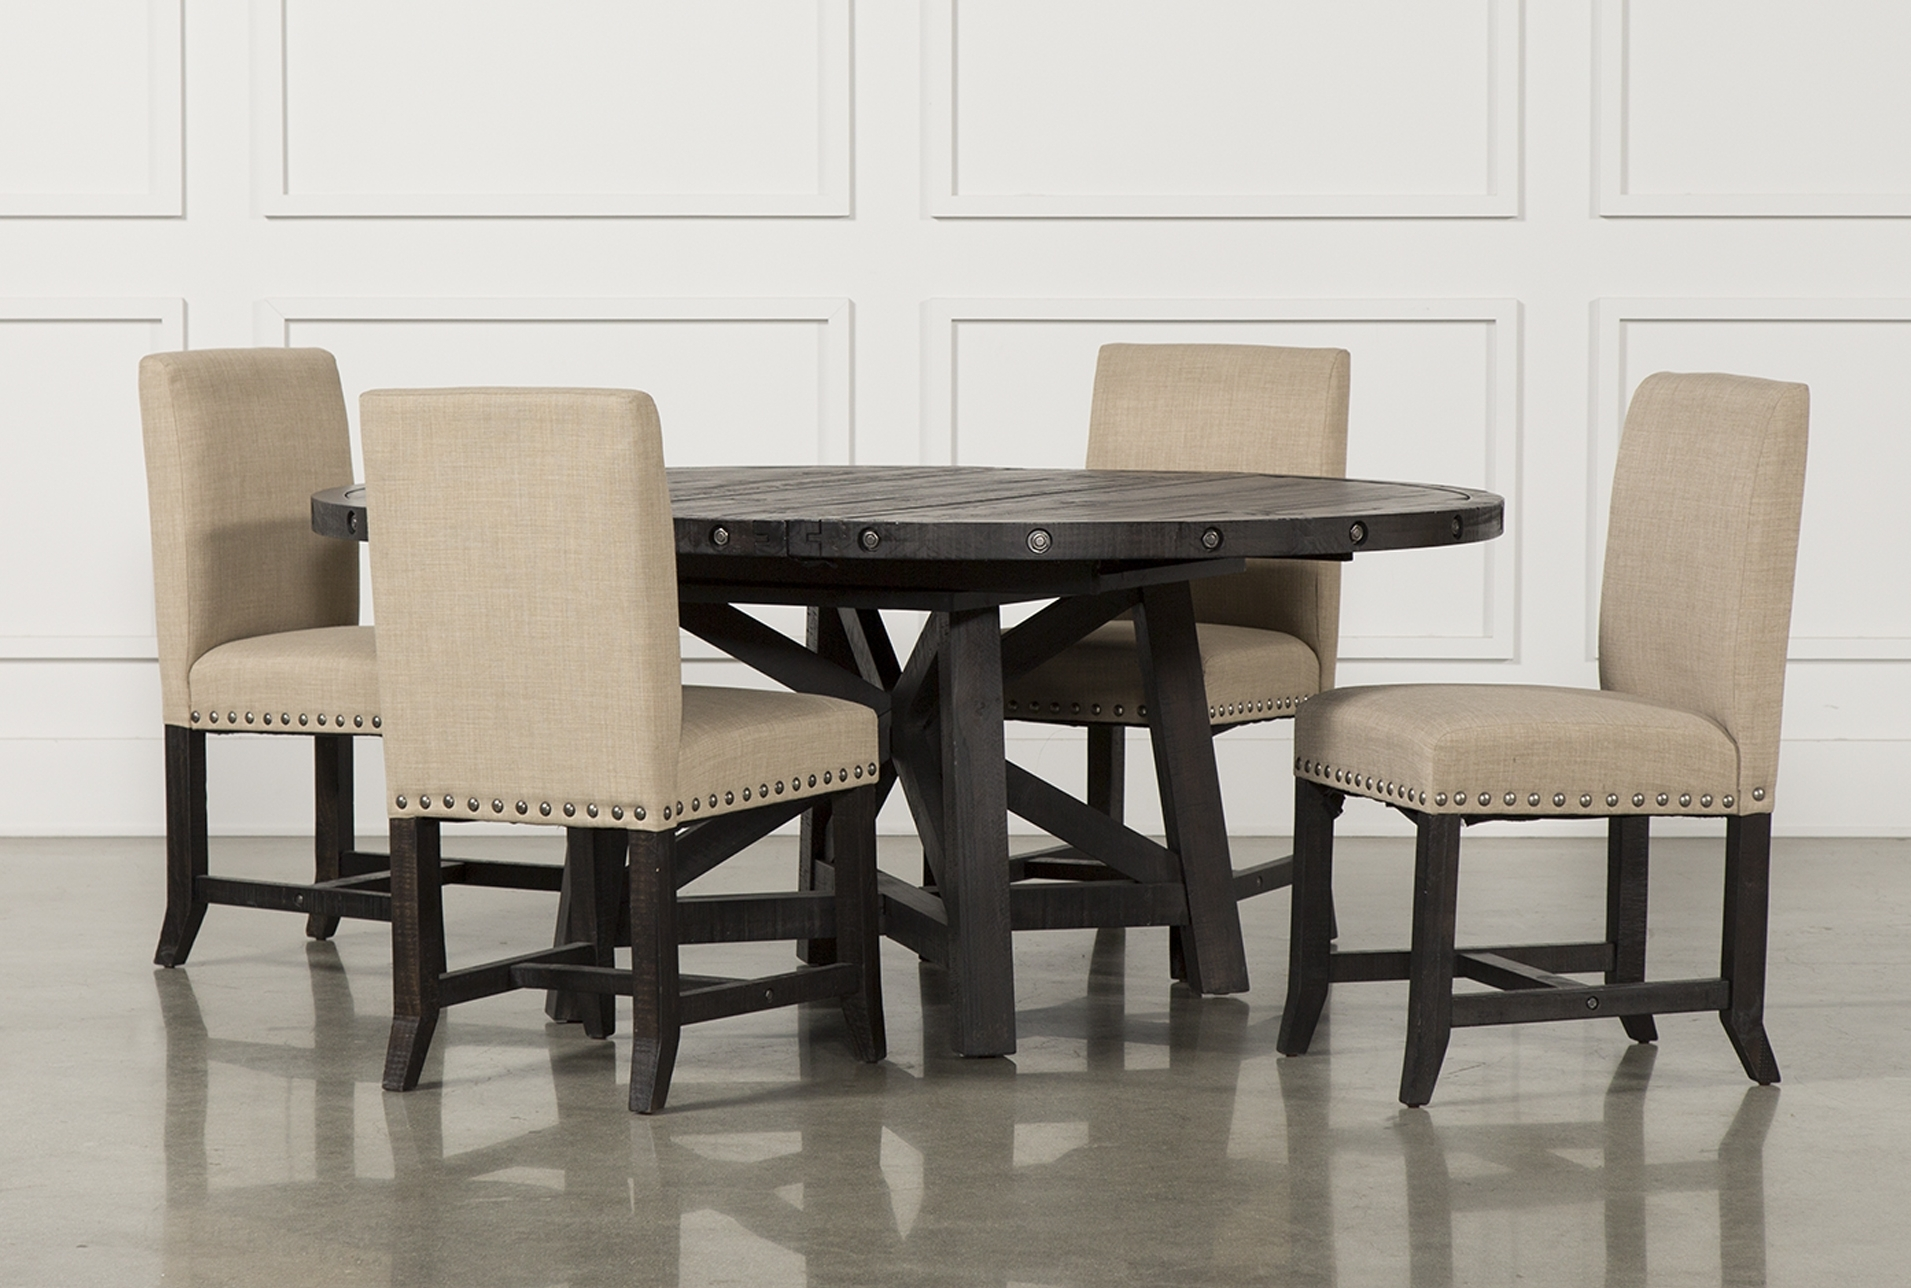 Jaxon Grey 7 Piece Rectangle Extension Dining Sets With Wood Chairs Throughout Most Current 5. Jaxon 5 Piece Round Dining Set W Upholstered Chairs Qty 1 Has (Gallery 12 of 25)